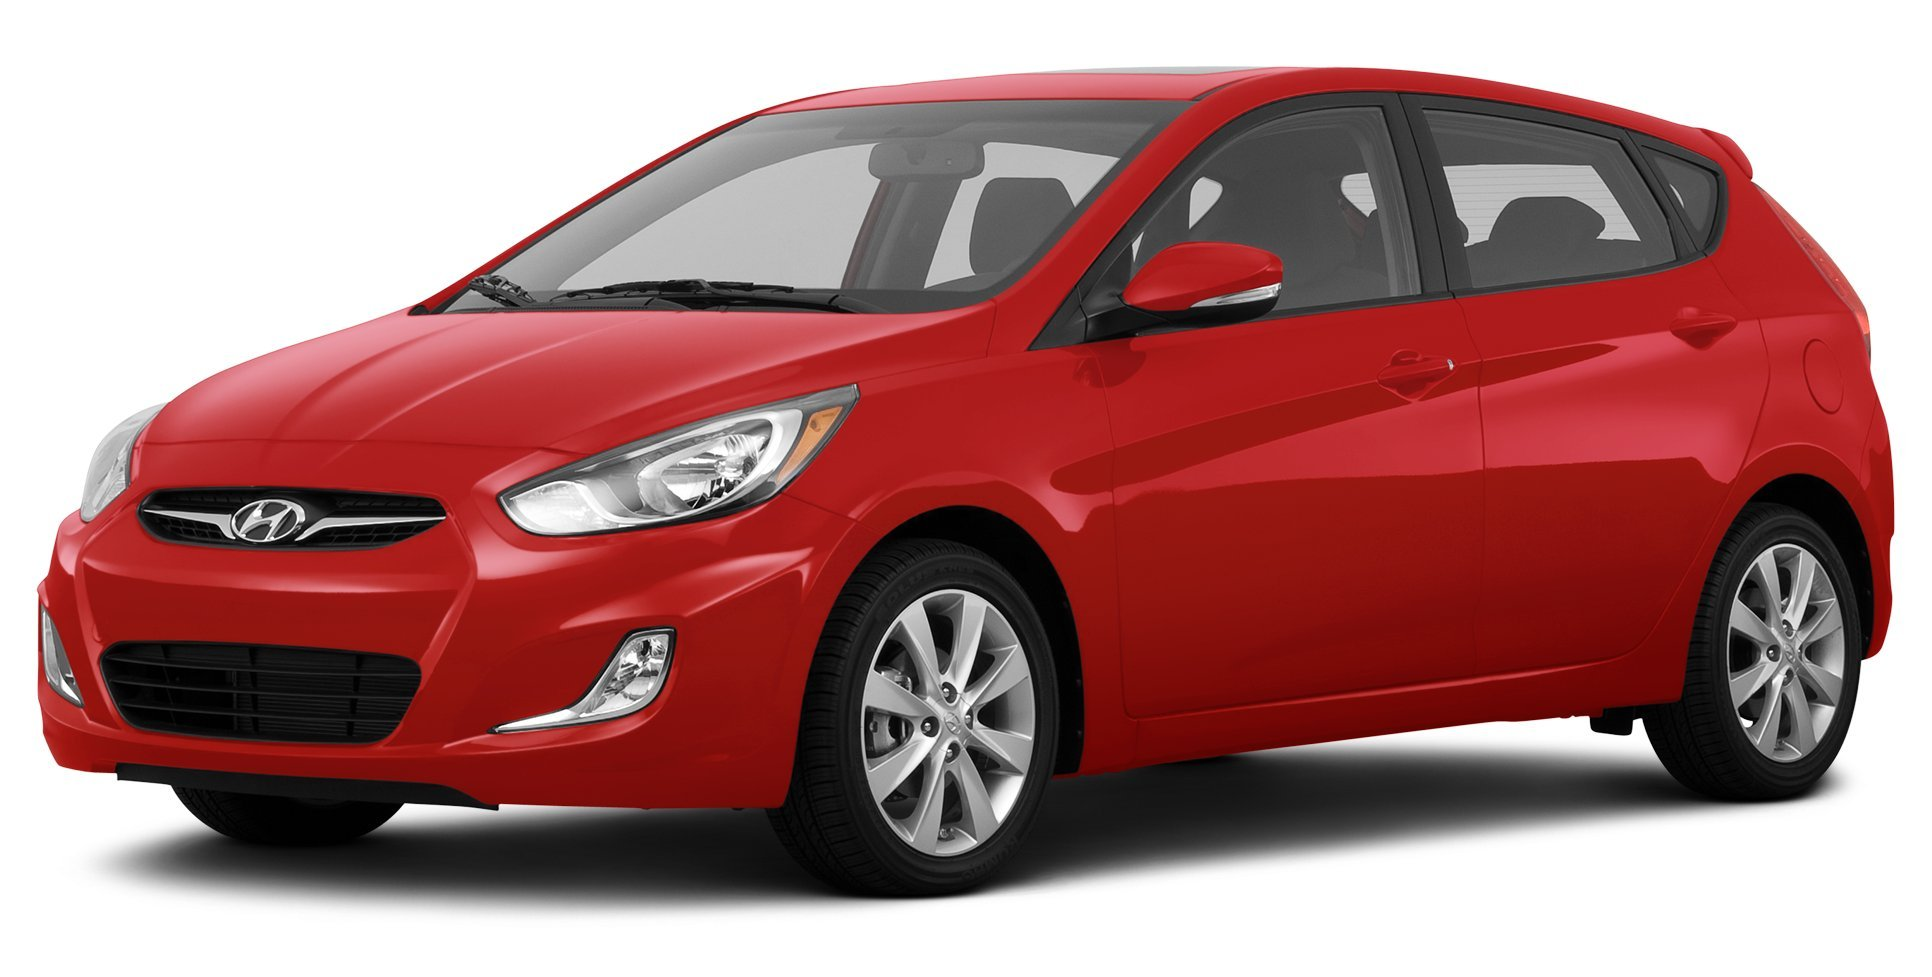 ... 2013 Hyundai Accent SE, 5-Door Hatchback Manual Transmission ...